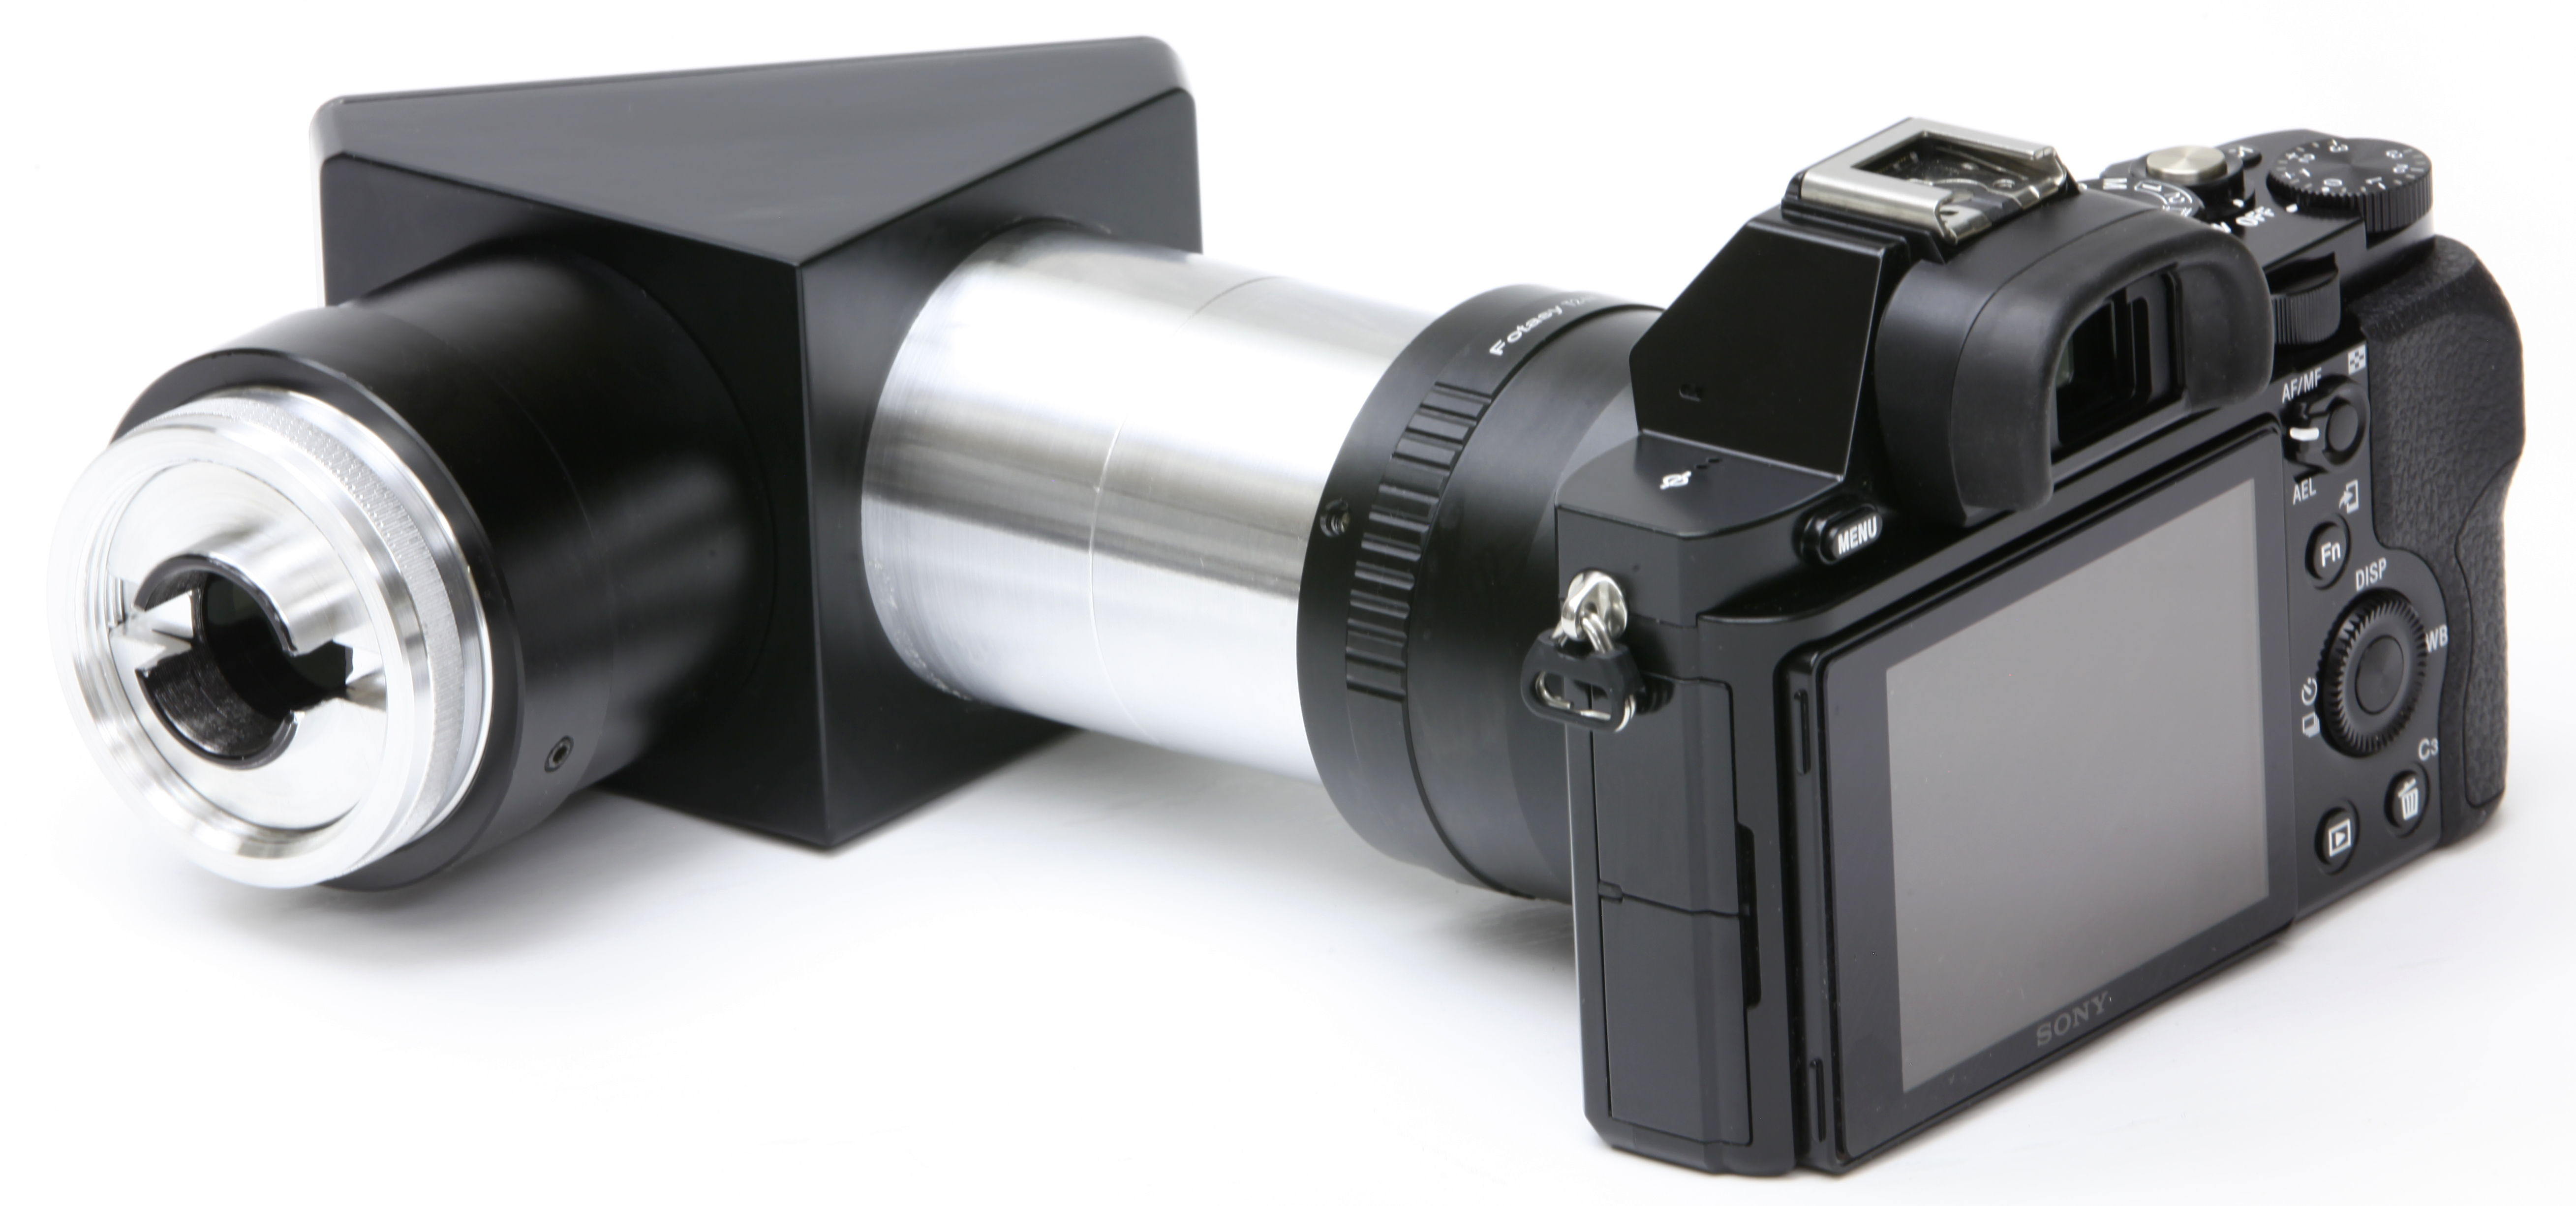 Digital camera adapter for the Haag-Streit BQ900 and full-frame cameras